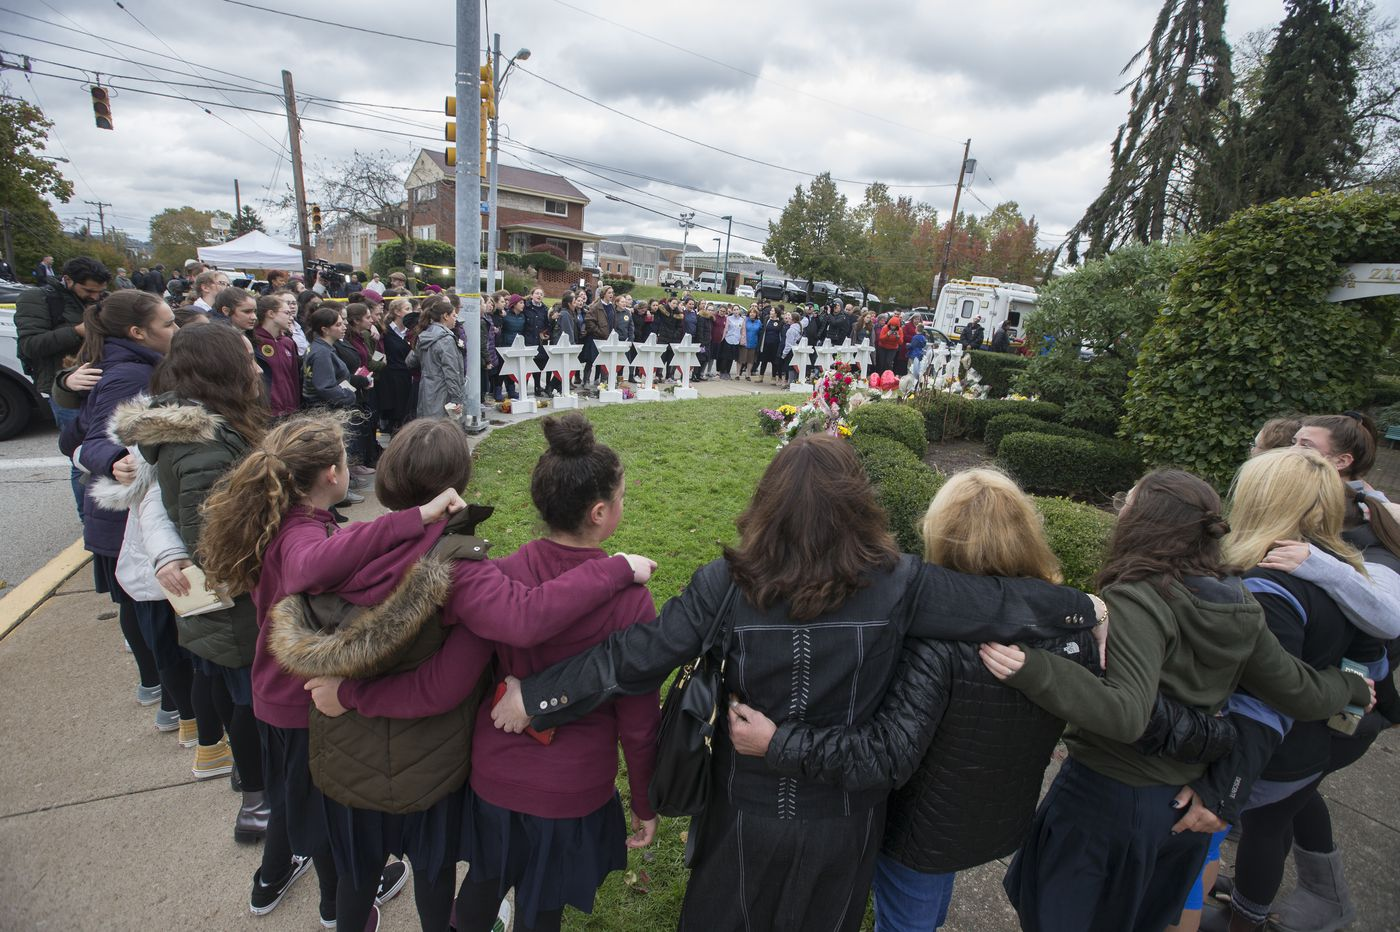 Pittsburgh prepares to commemorate Tree of Life synagogue attack one year later